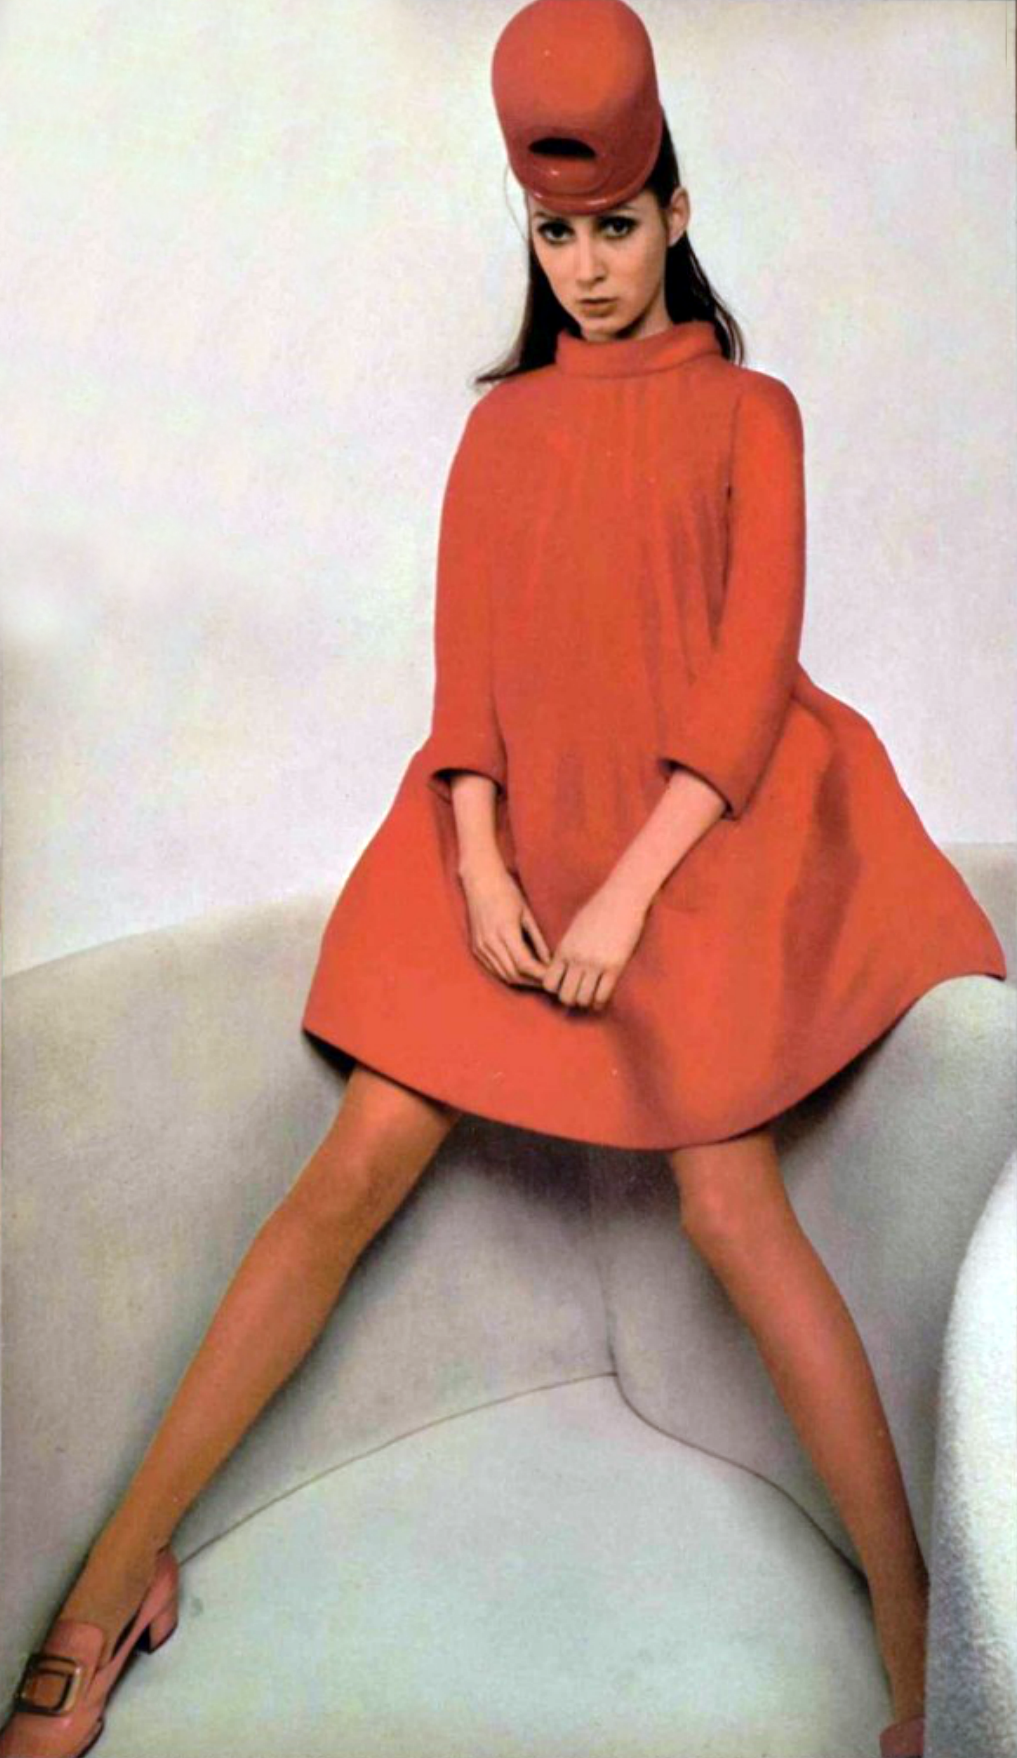 Pierre cardin robe manteau l officiel magazine 1968 pierre cardin pinterest mode kleidung - Damenmode 60er ...